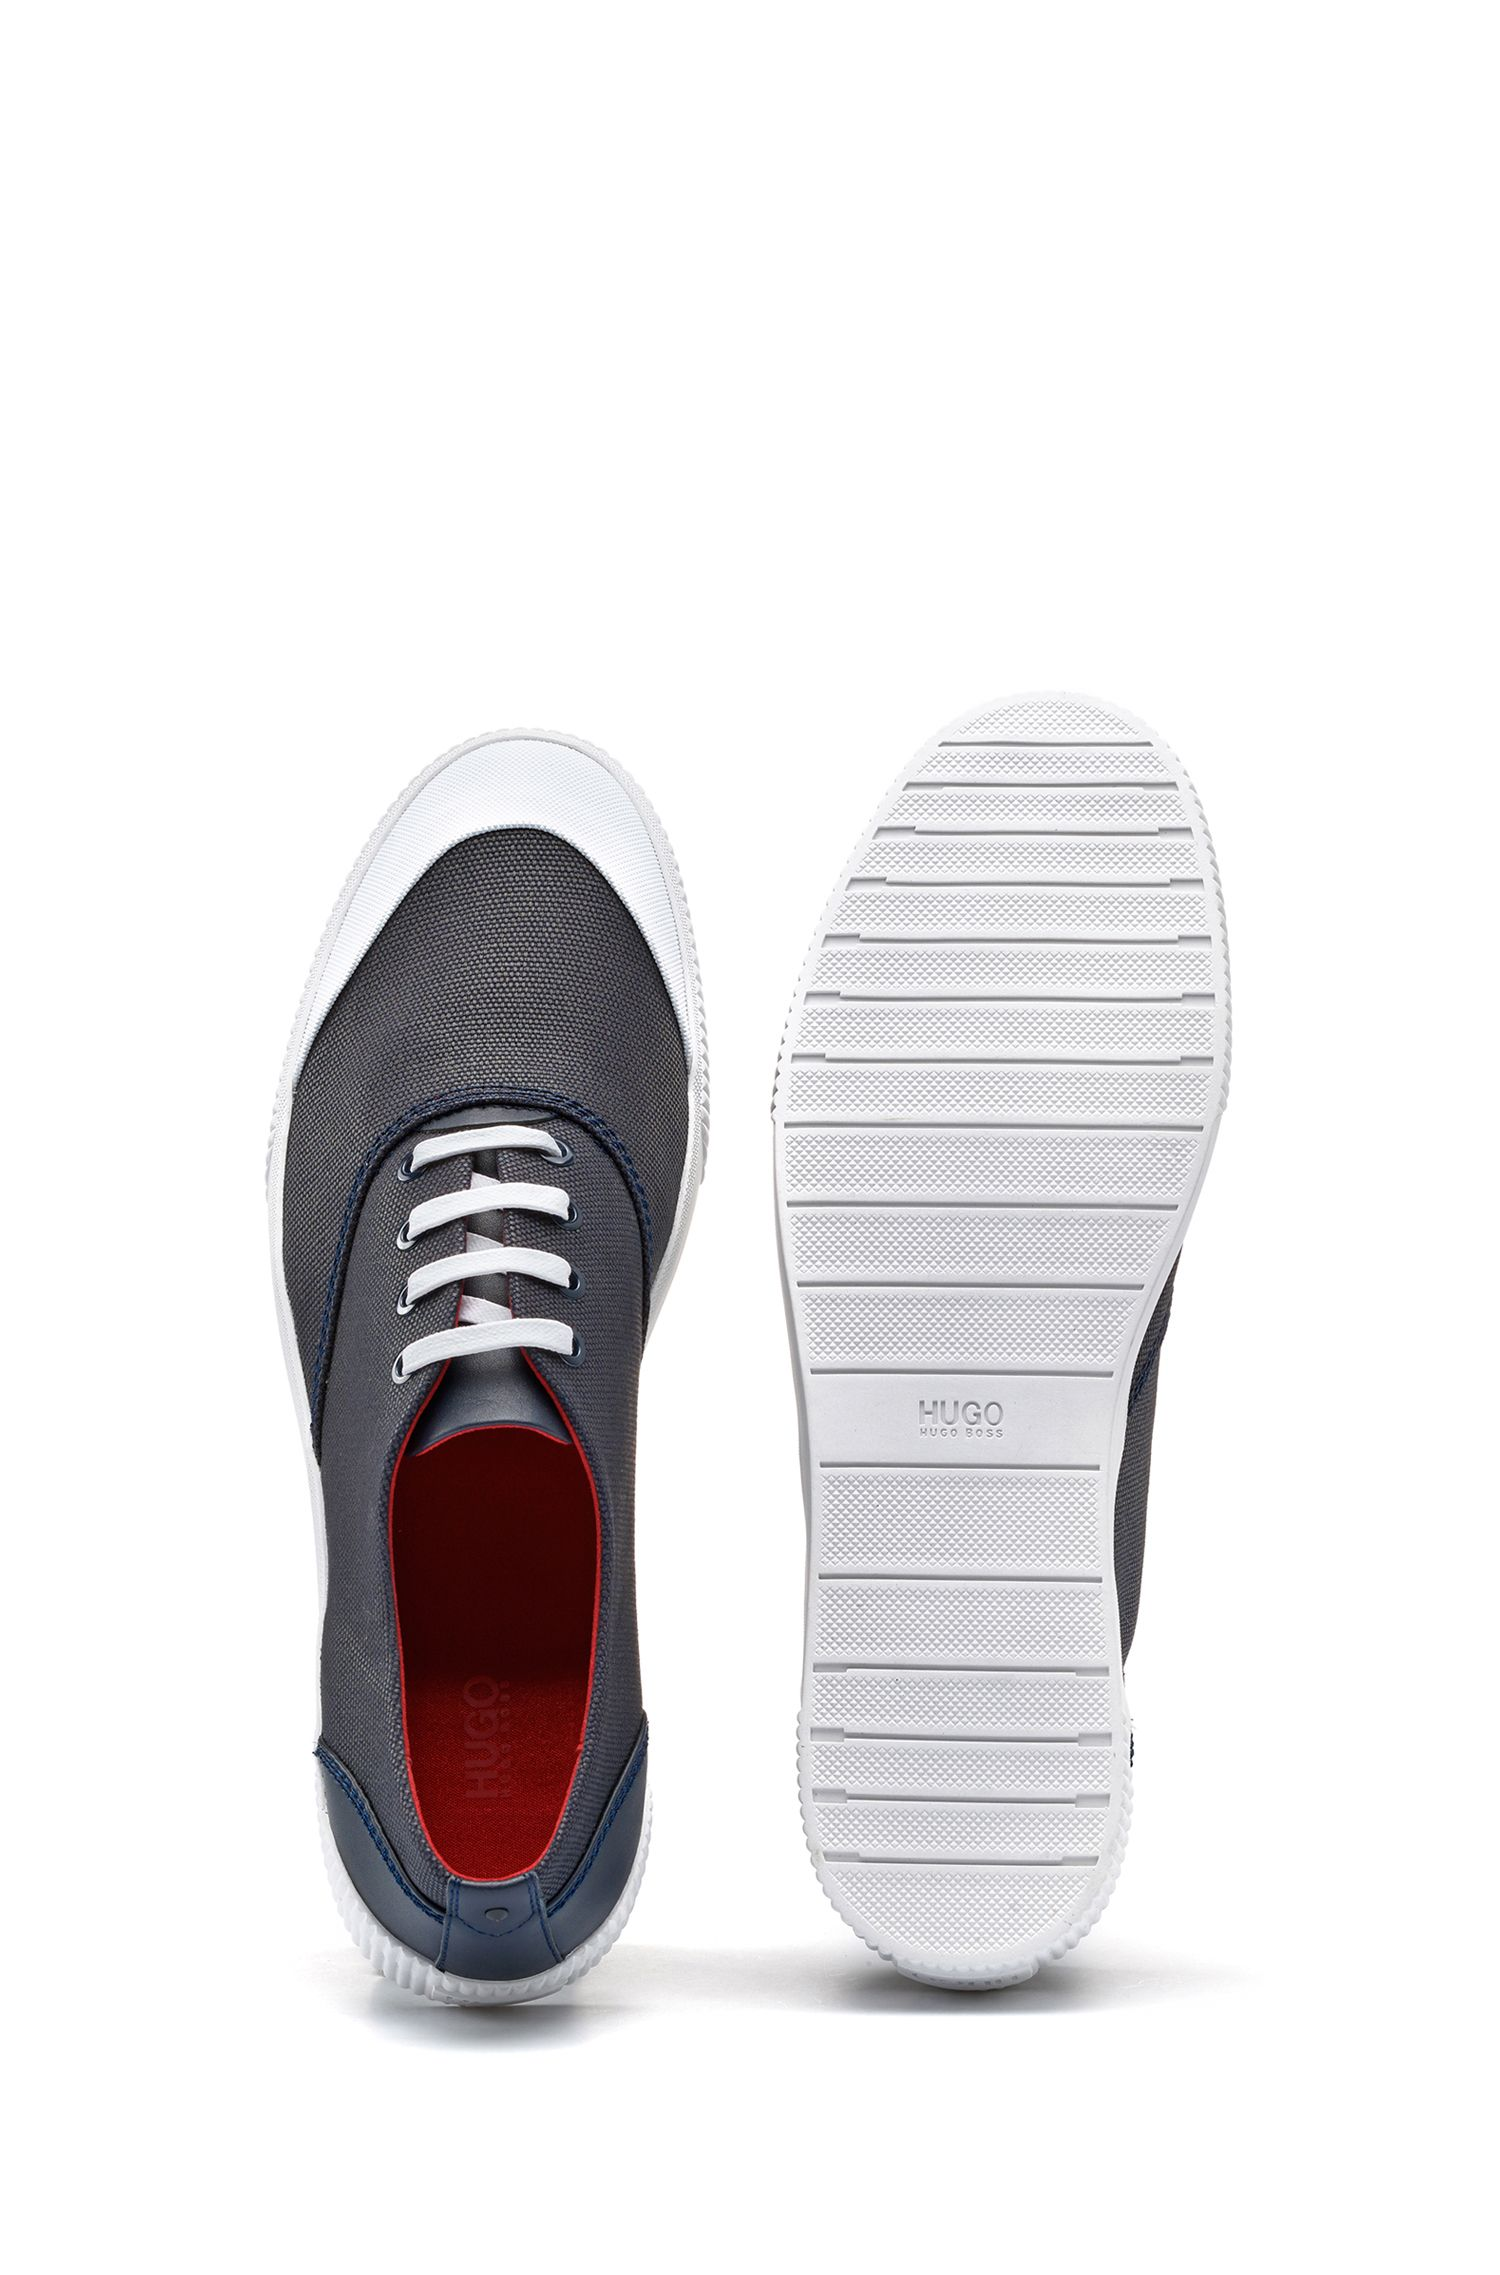 Lace-up tennis shoes in technical fabric